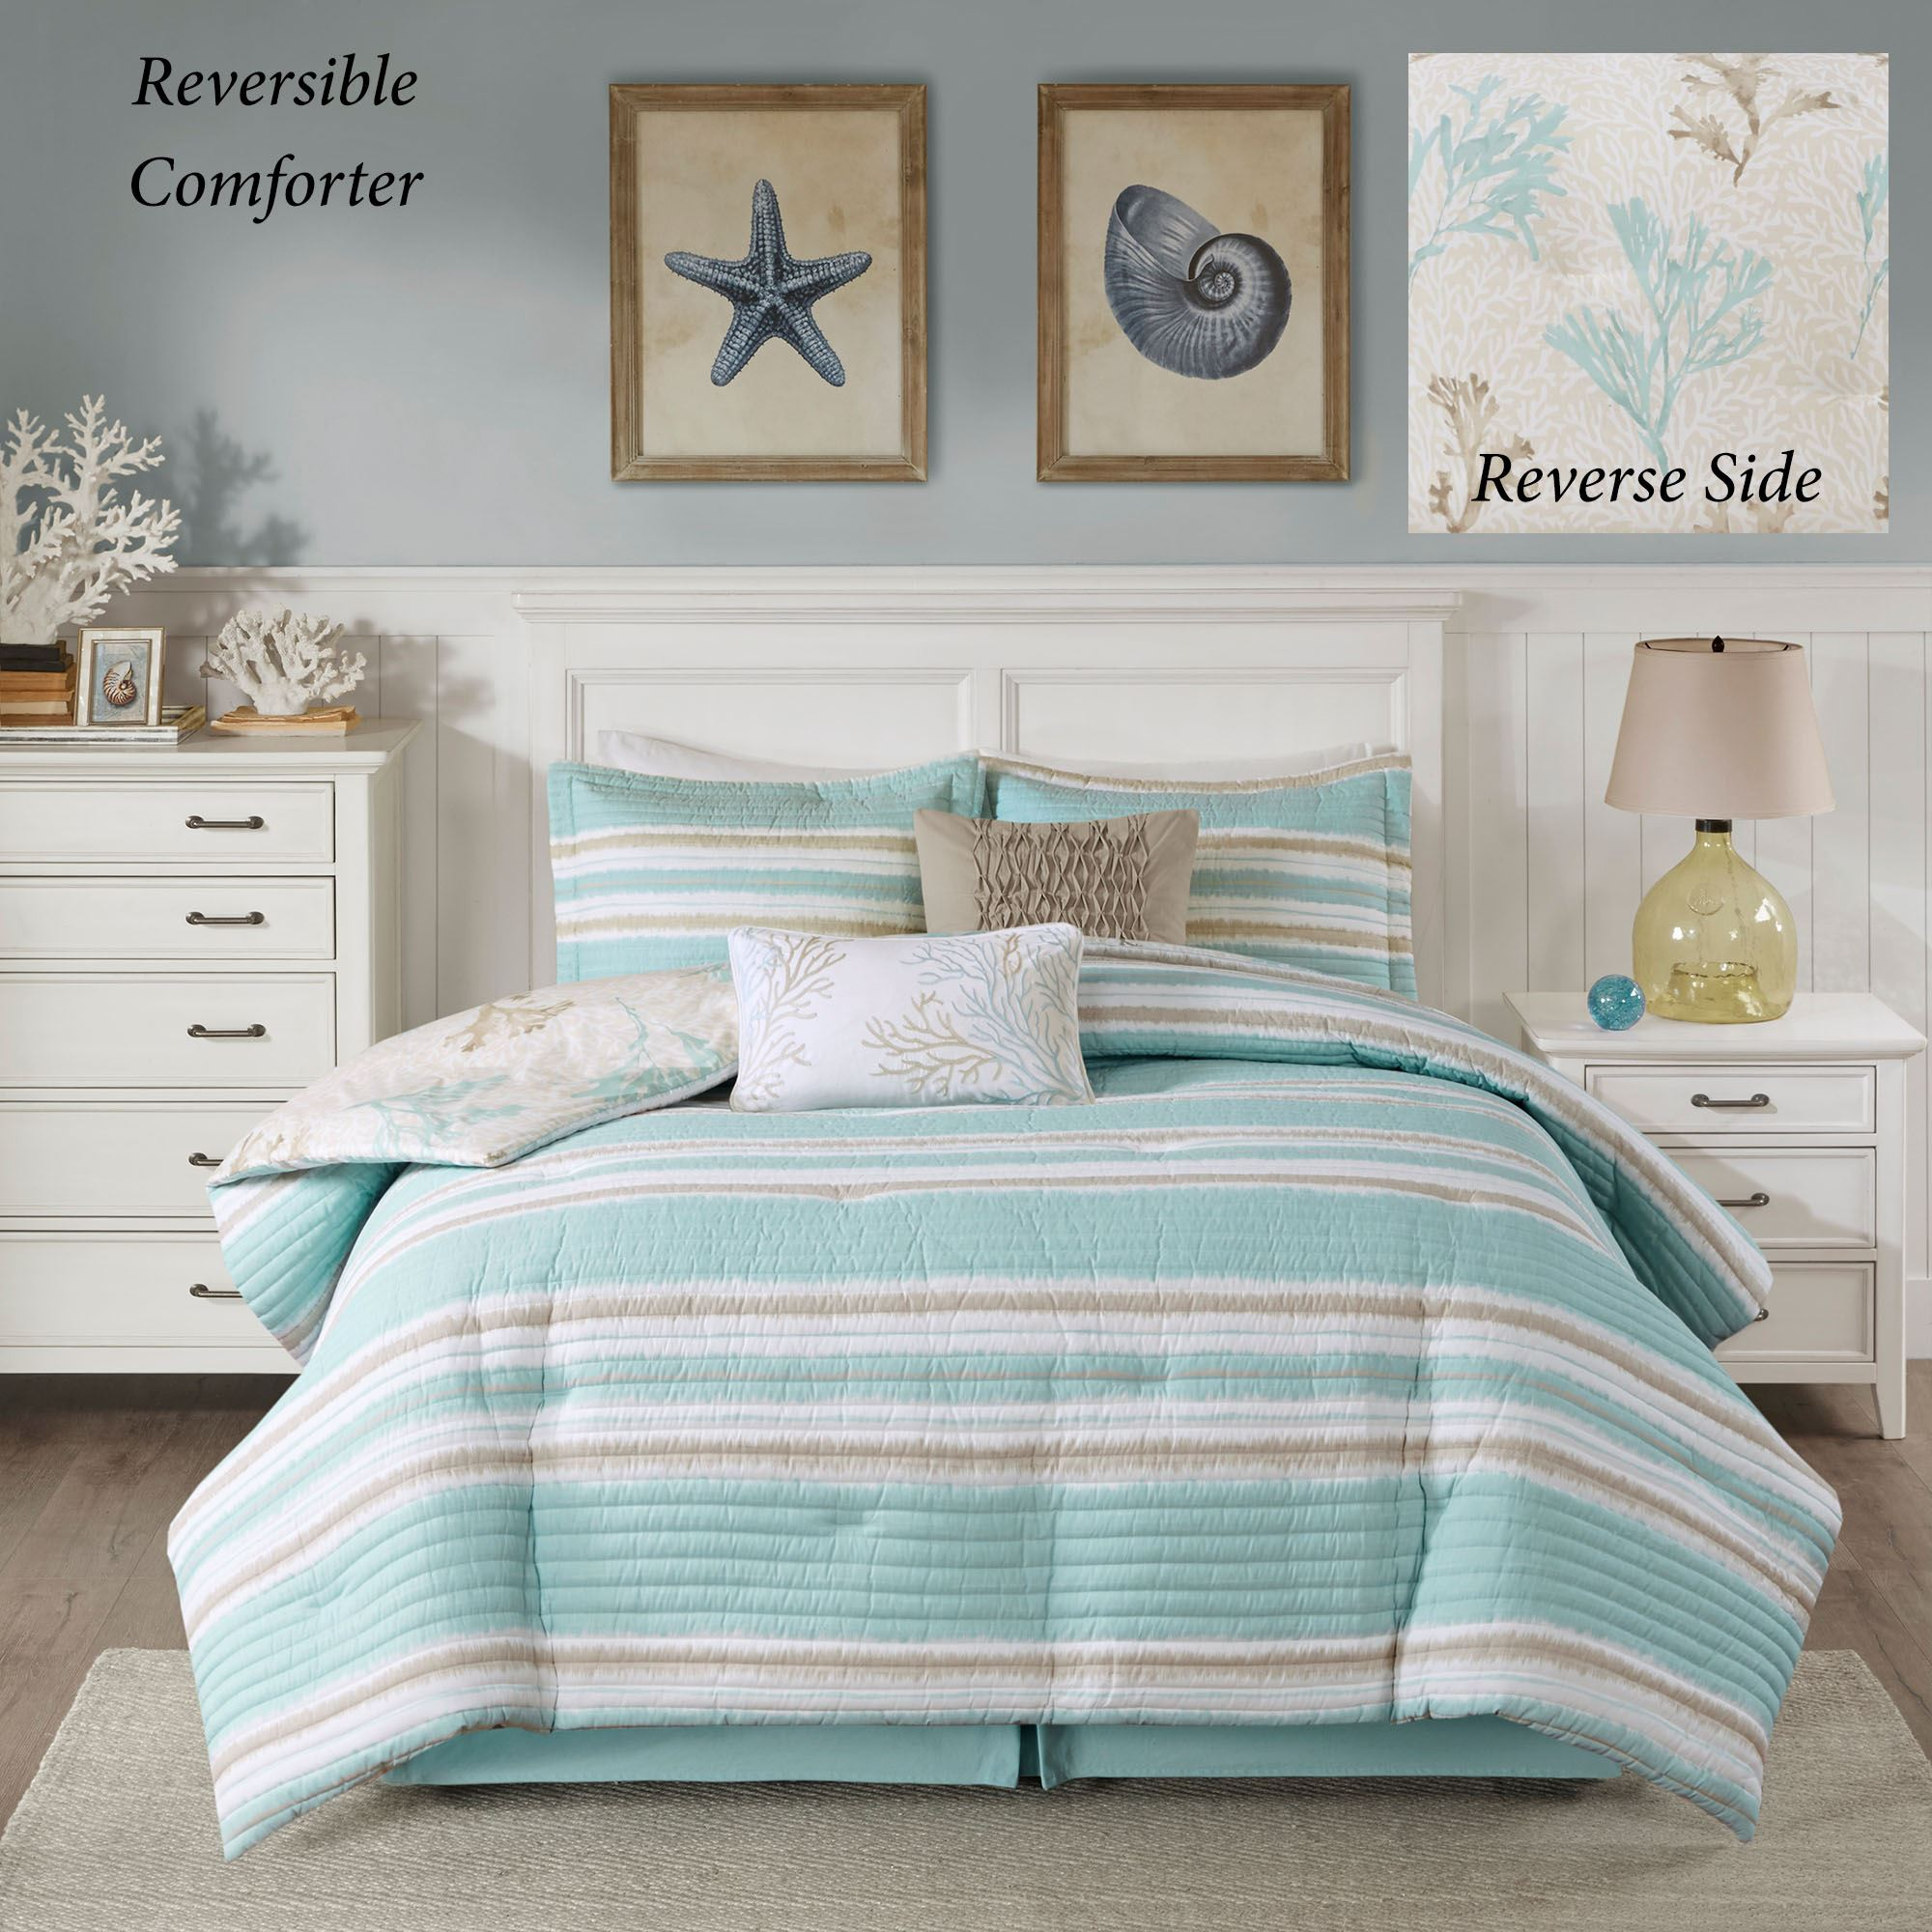 Ocean Reef Turquoise Striped 6 pc Coastal Comforter Bed Set by Harbor House